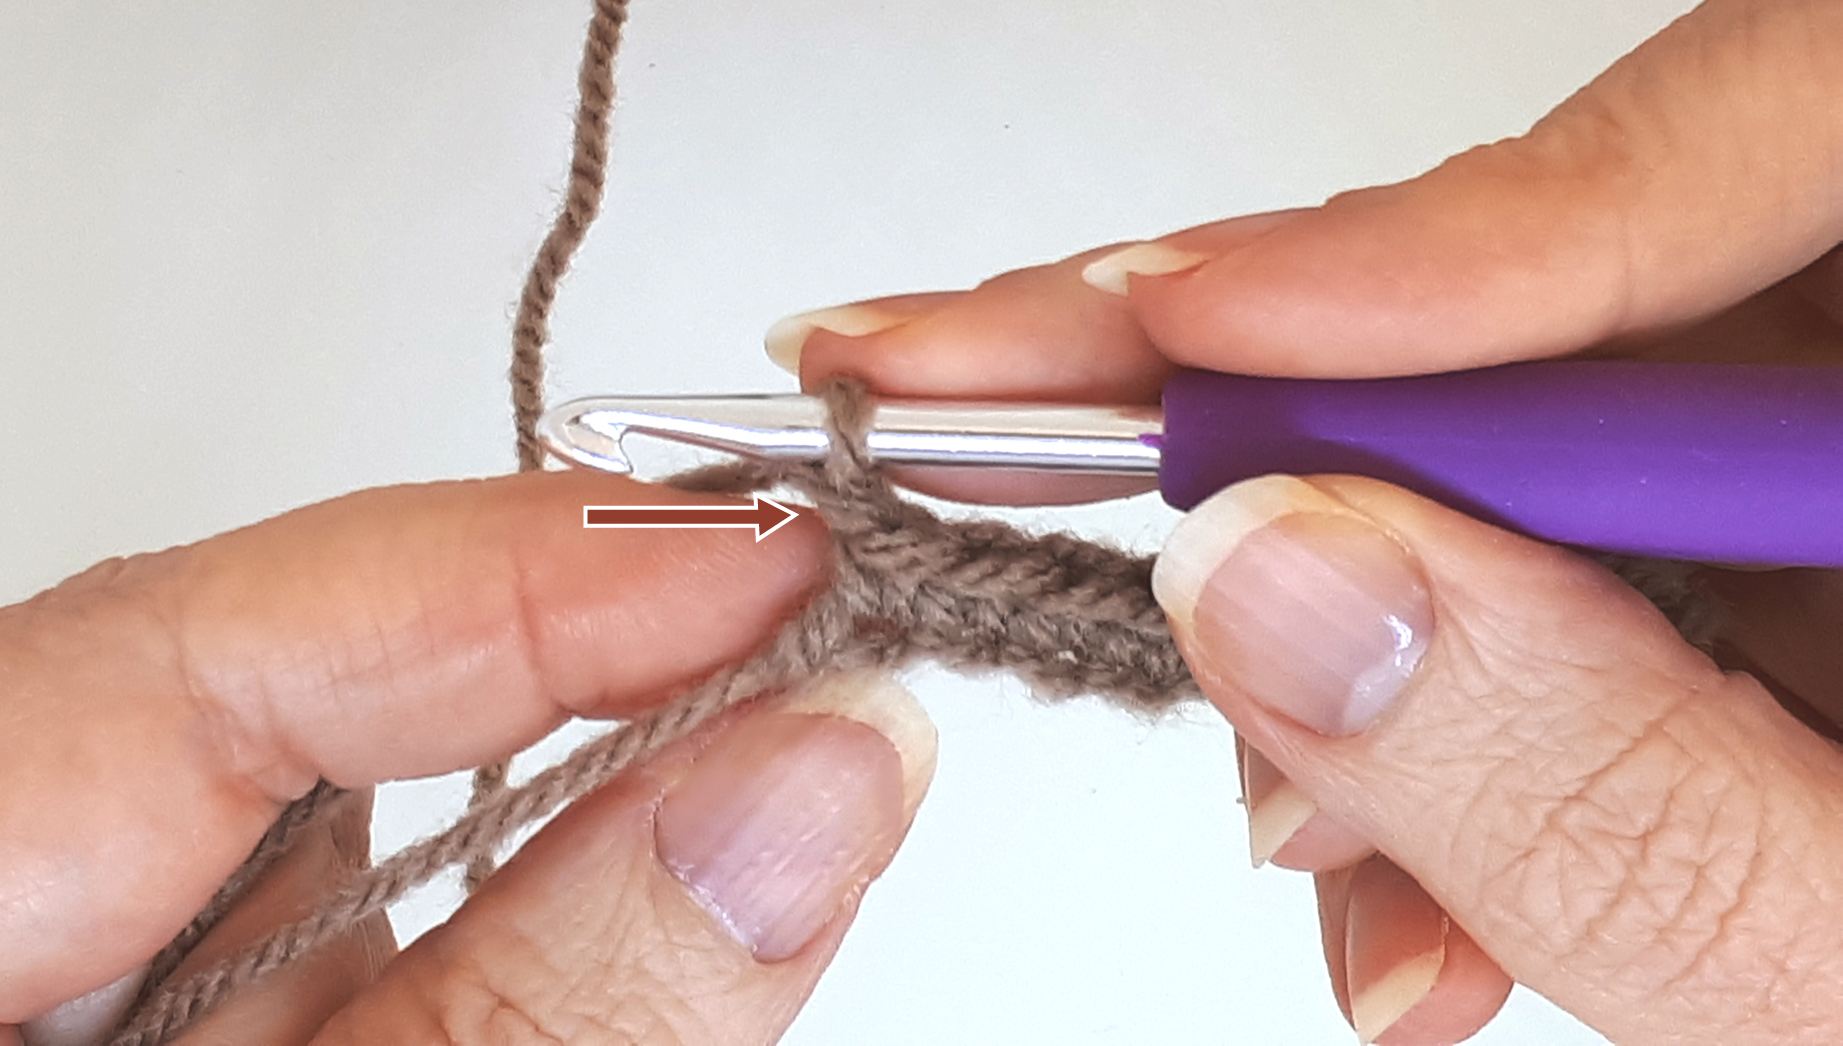 Close-up to a woman's hand crocheting with an arrow pointing to the first stitch